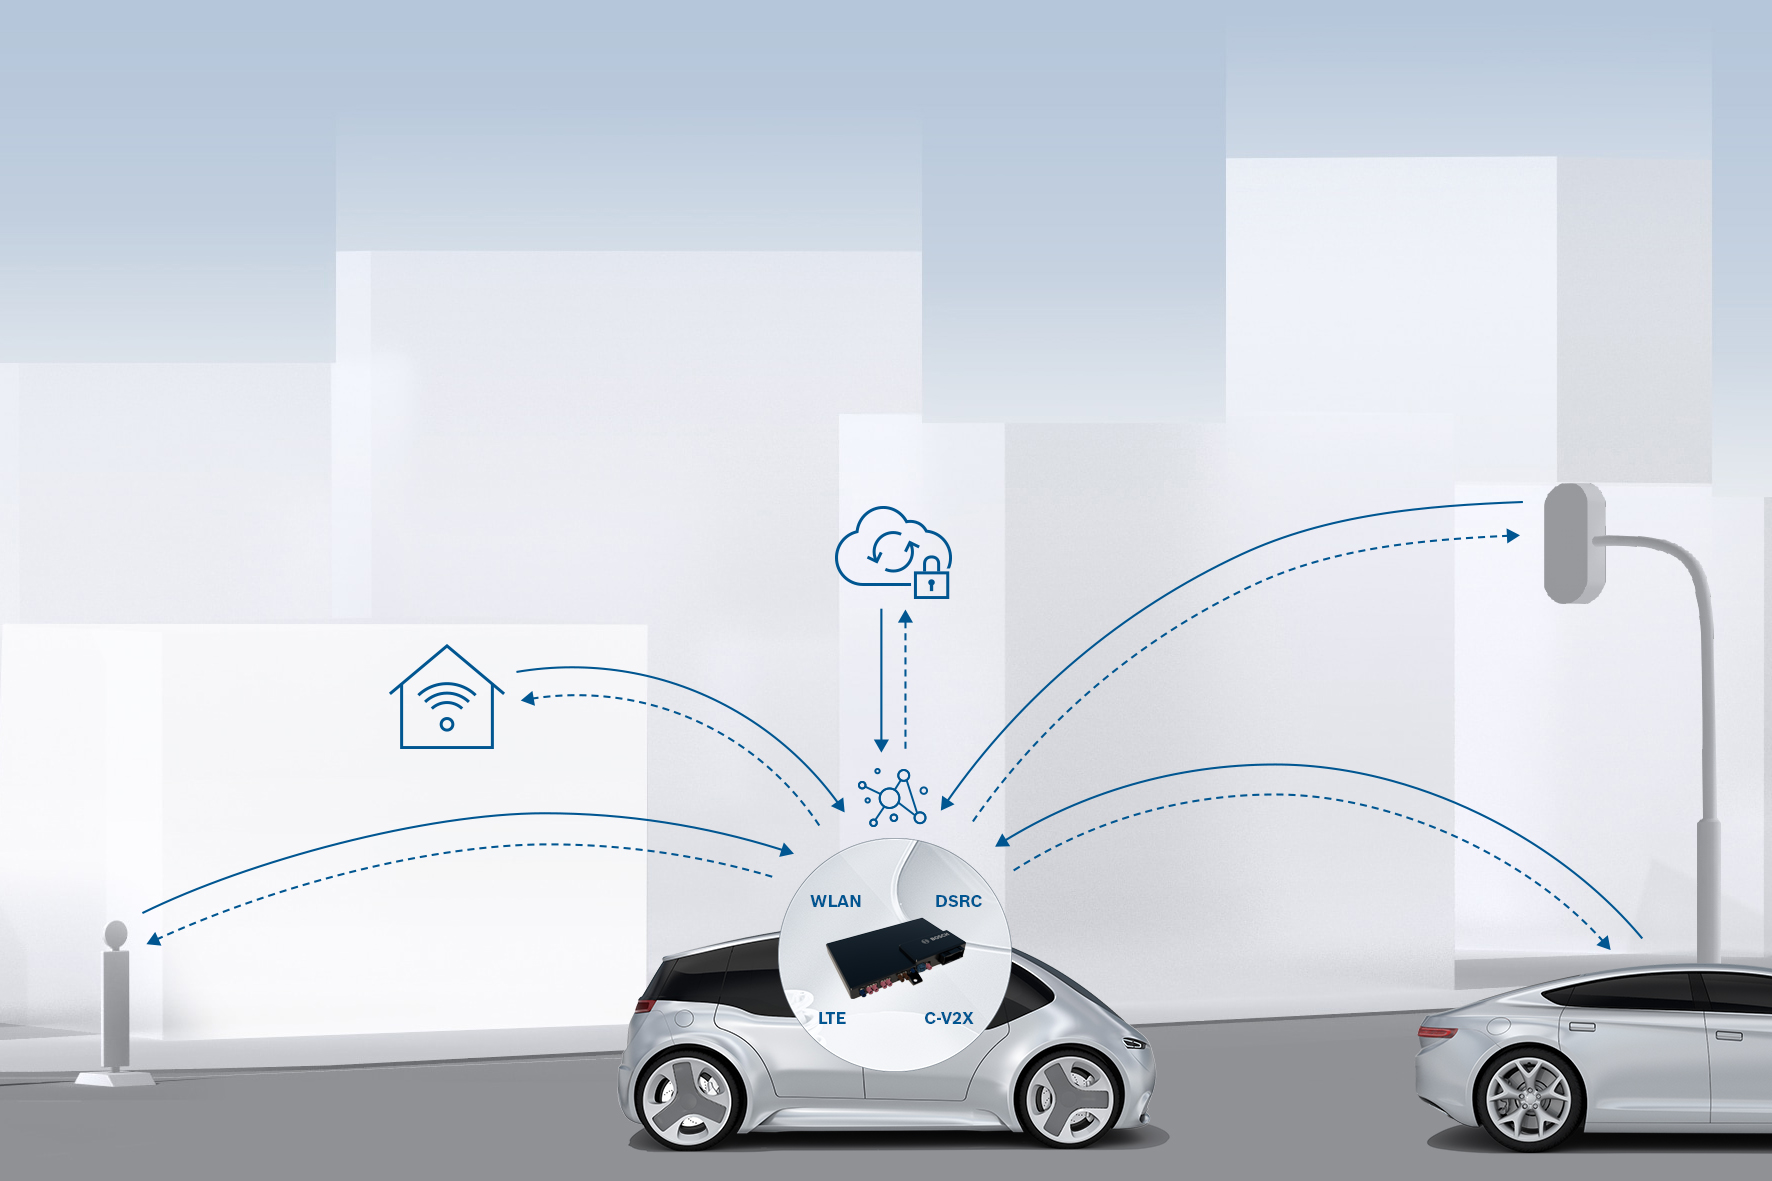 Alerts in critical situations through vehicle-to-x communication from Bosch